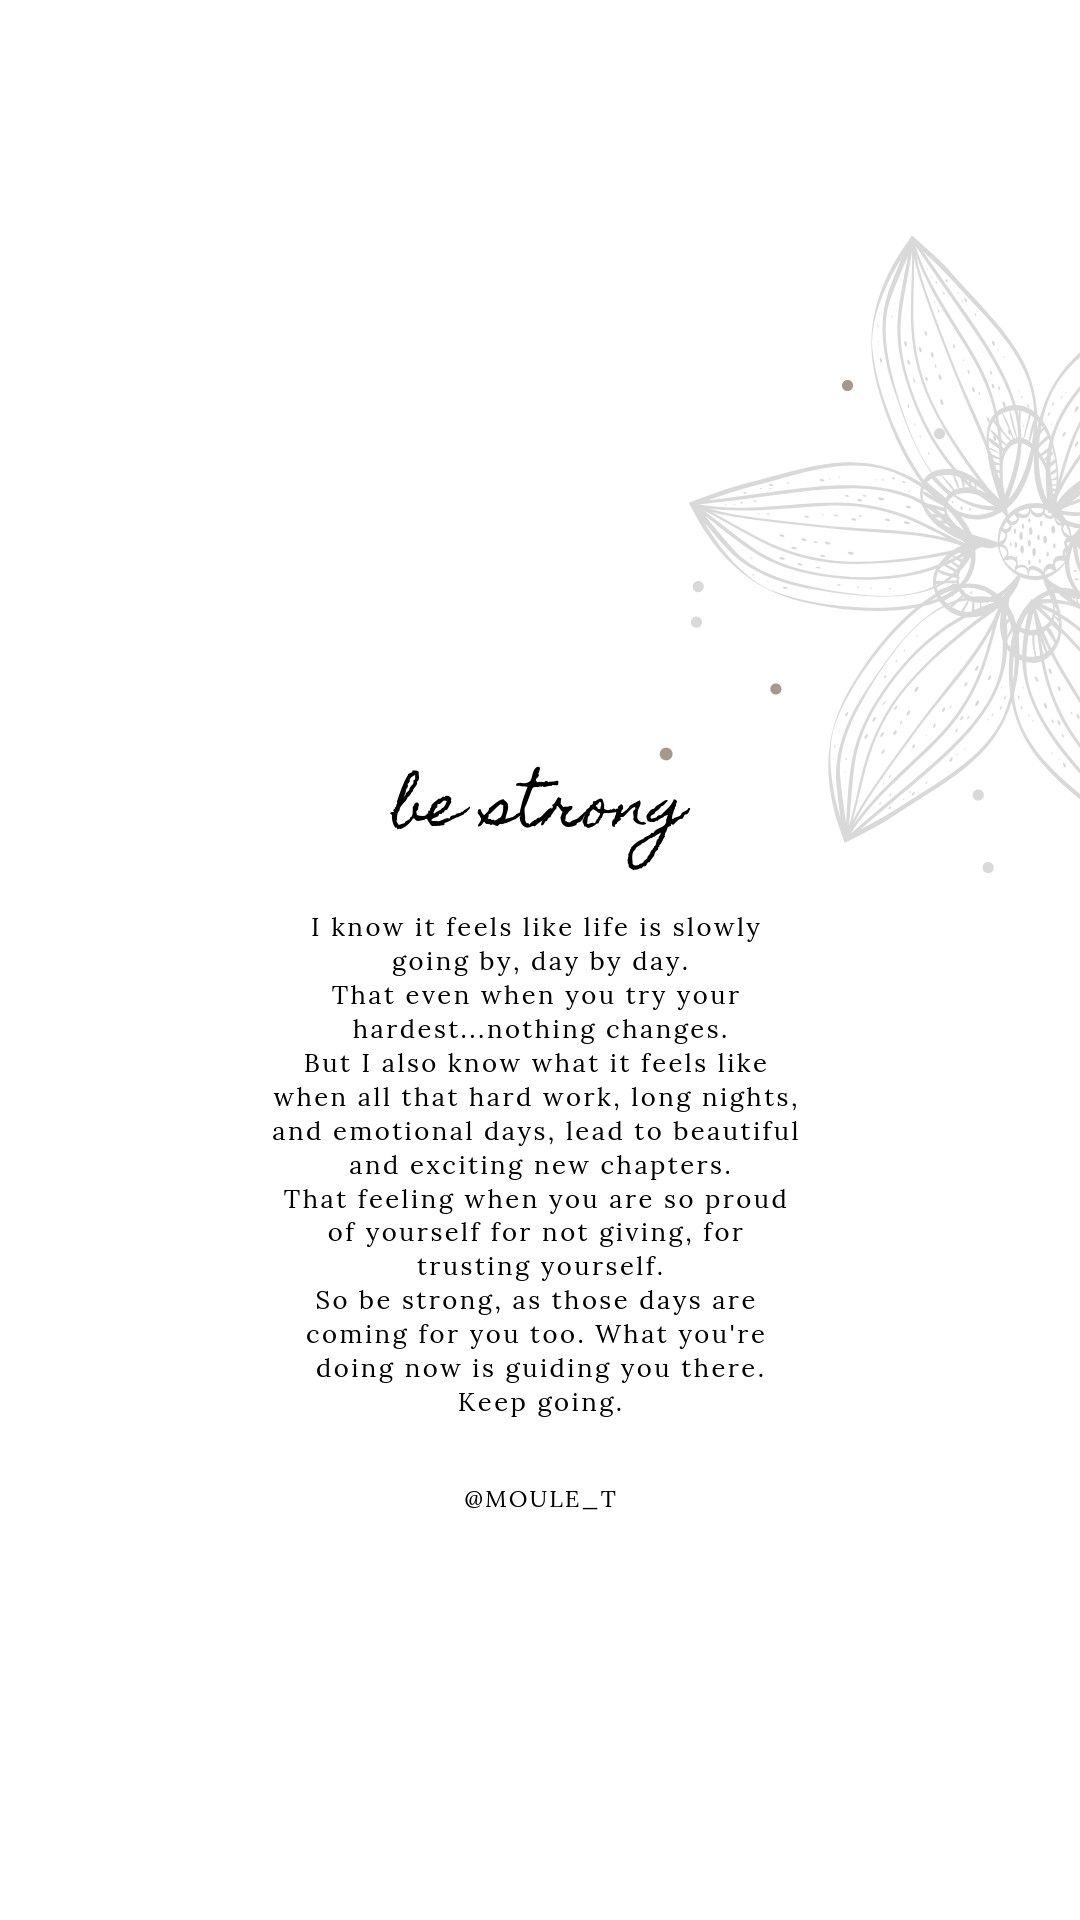 You are so strong, and there is so much growth coming, keep going love. You are doing amazing things